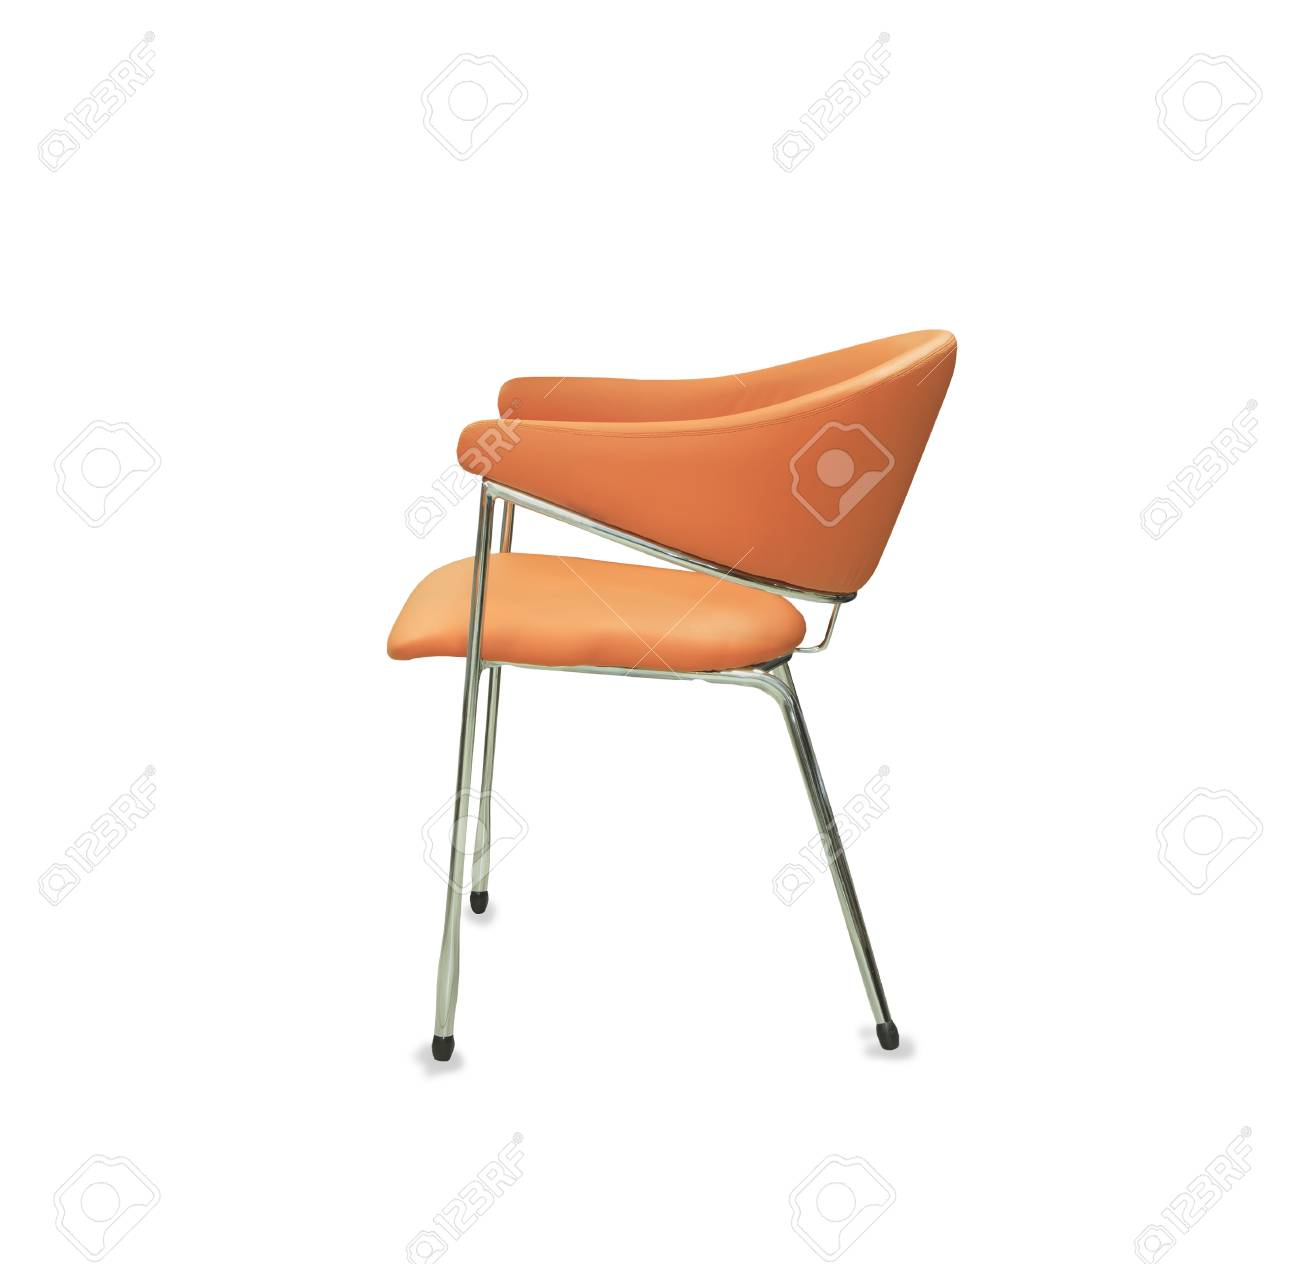 Picture of: The Office Chair From Orange Leather Isolated Stock Photo Picture And Royalty Free Image Image 64222389